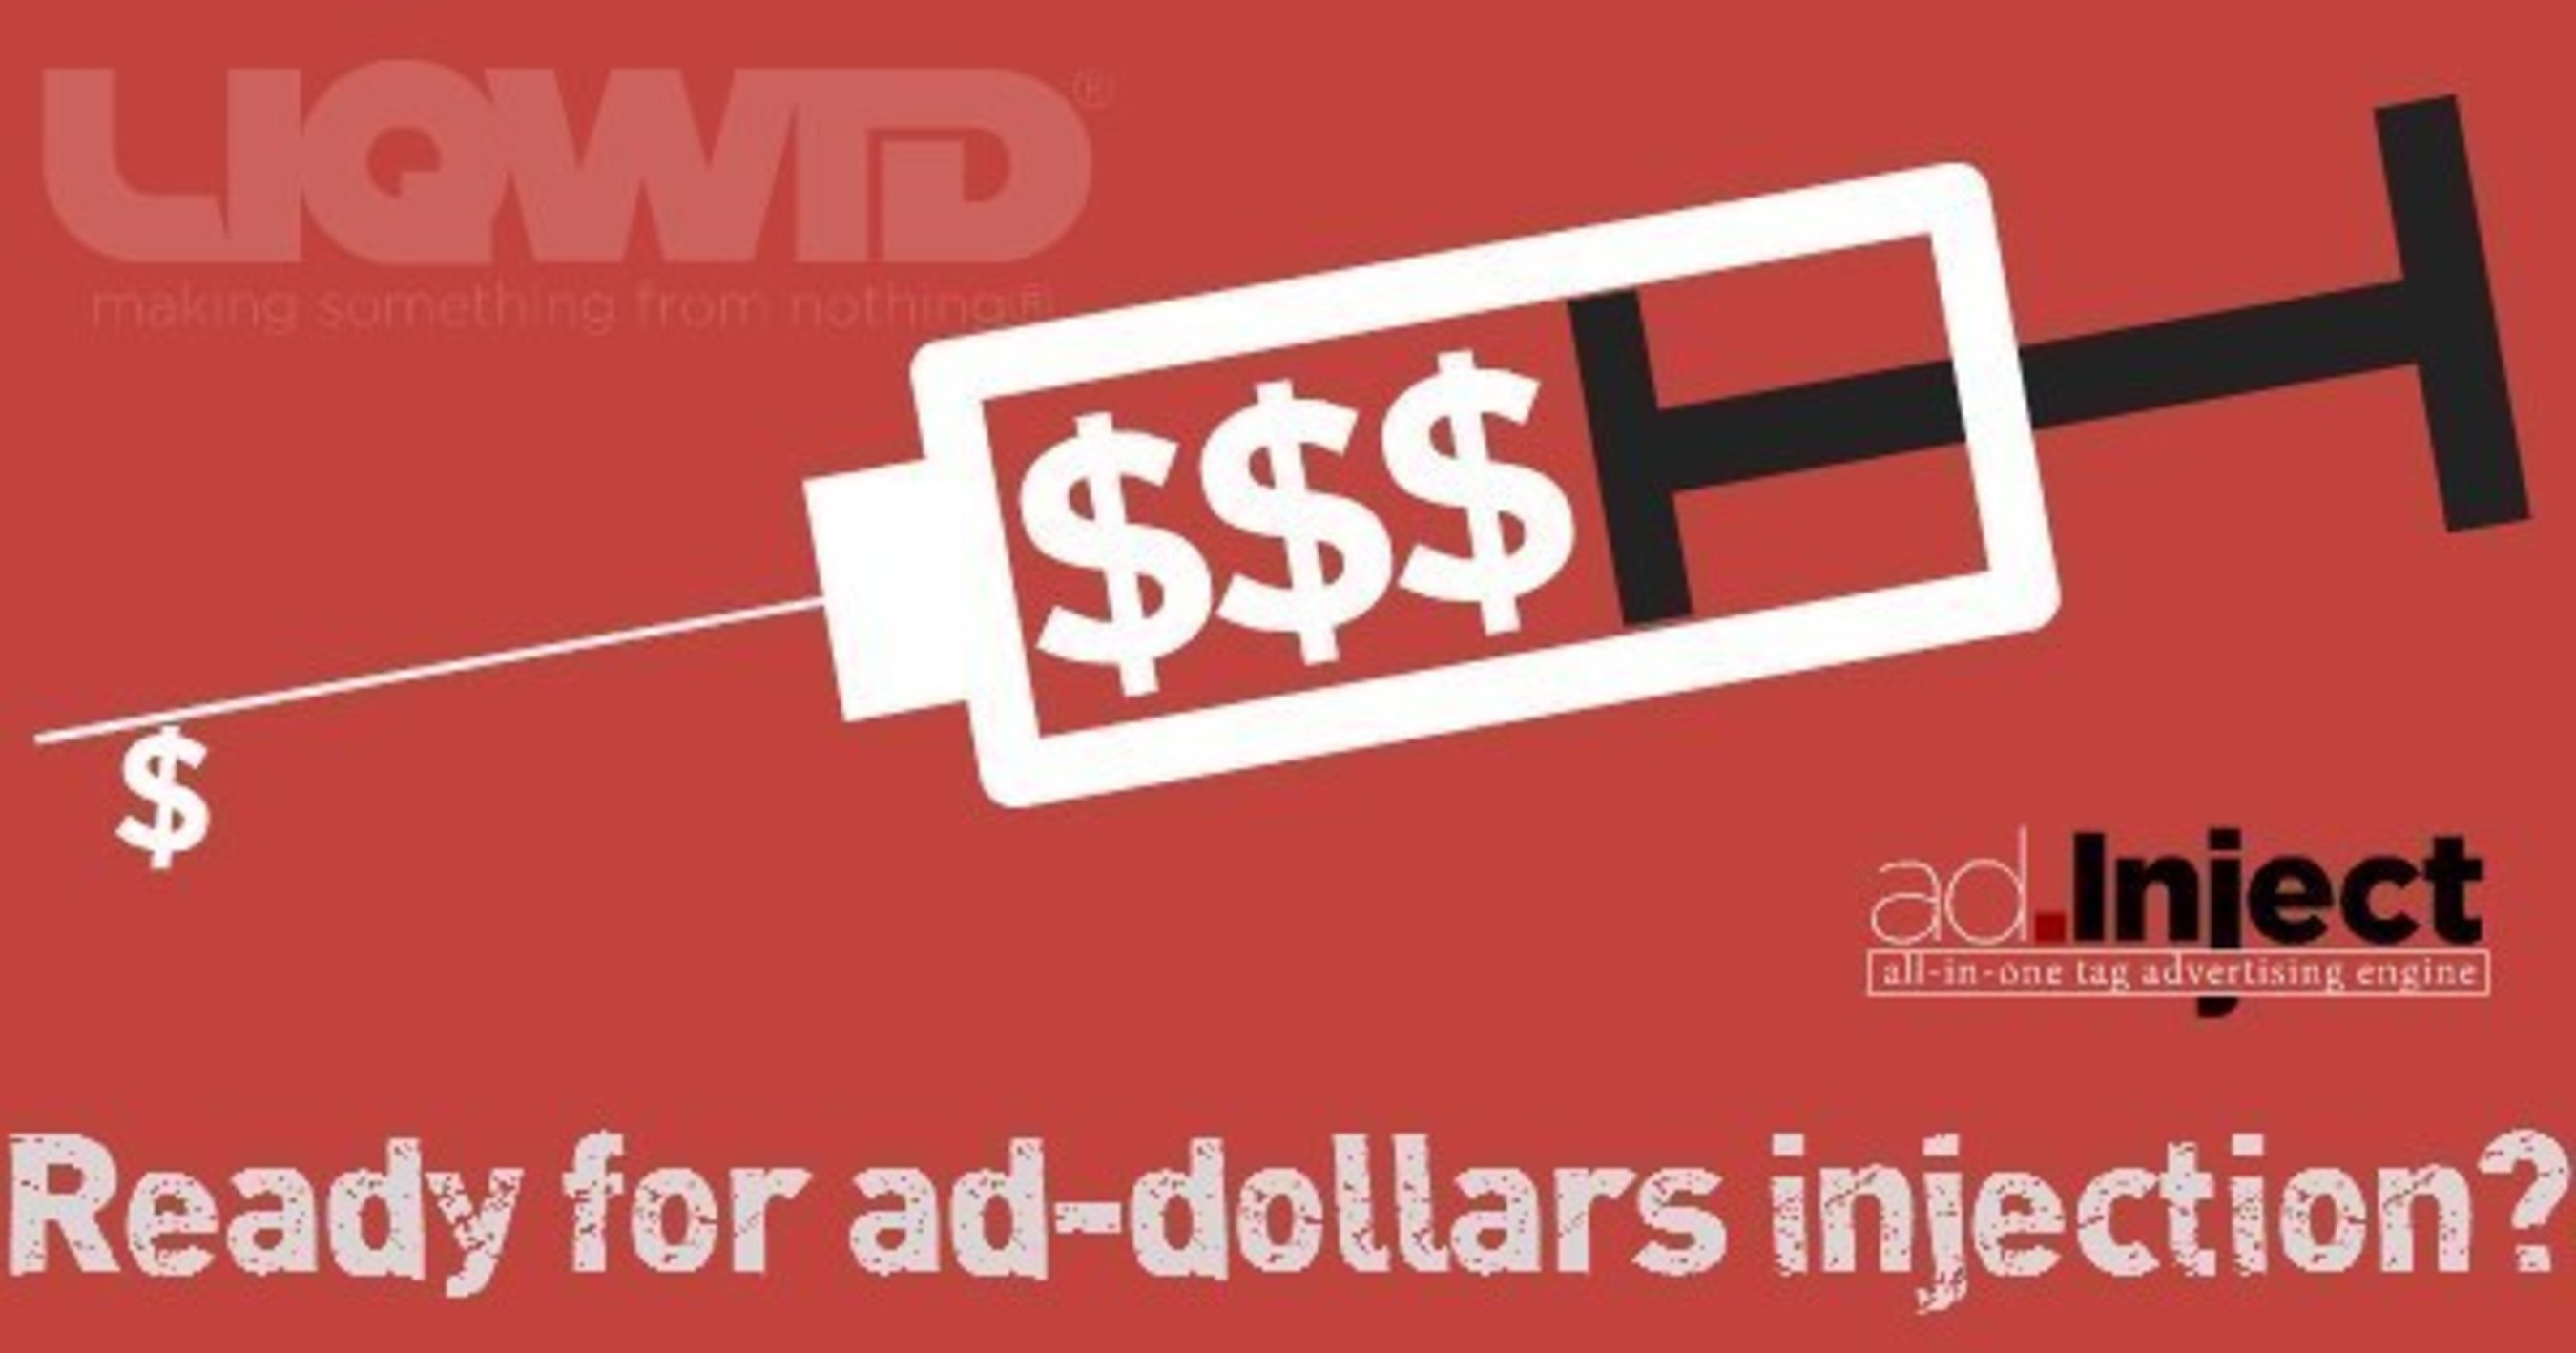 LIQWID® Launches ad.Inject, the All-in-One Tag Monetization Solution